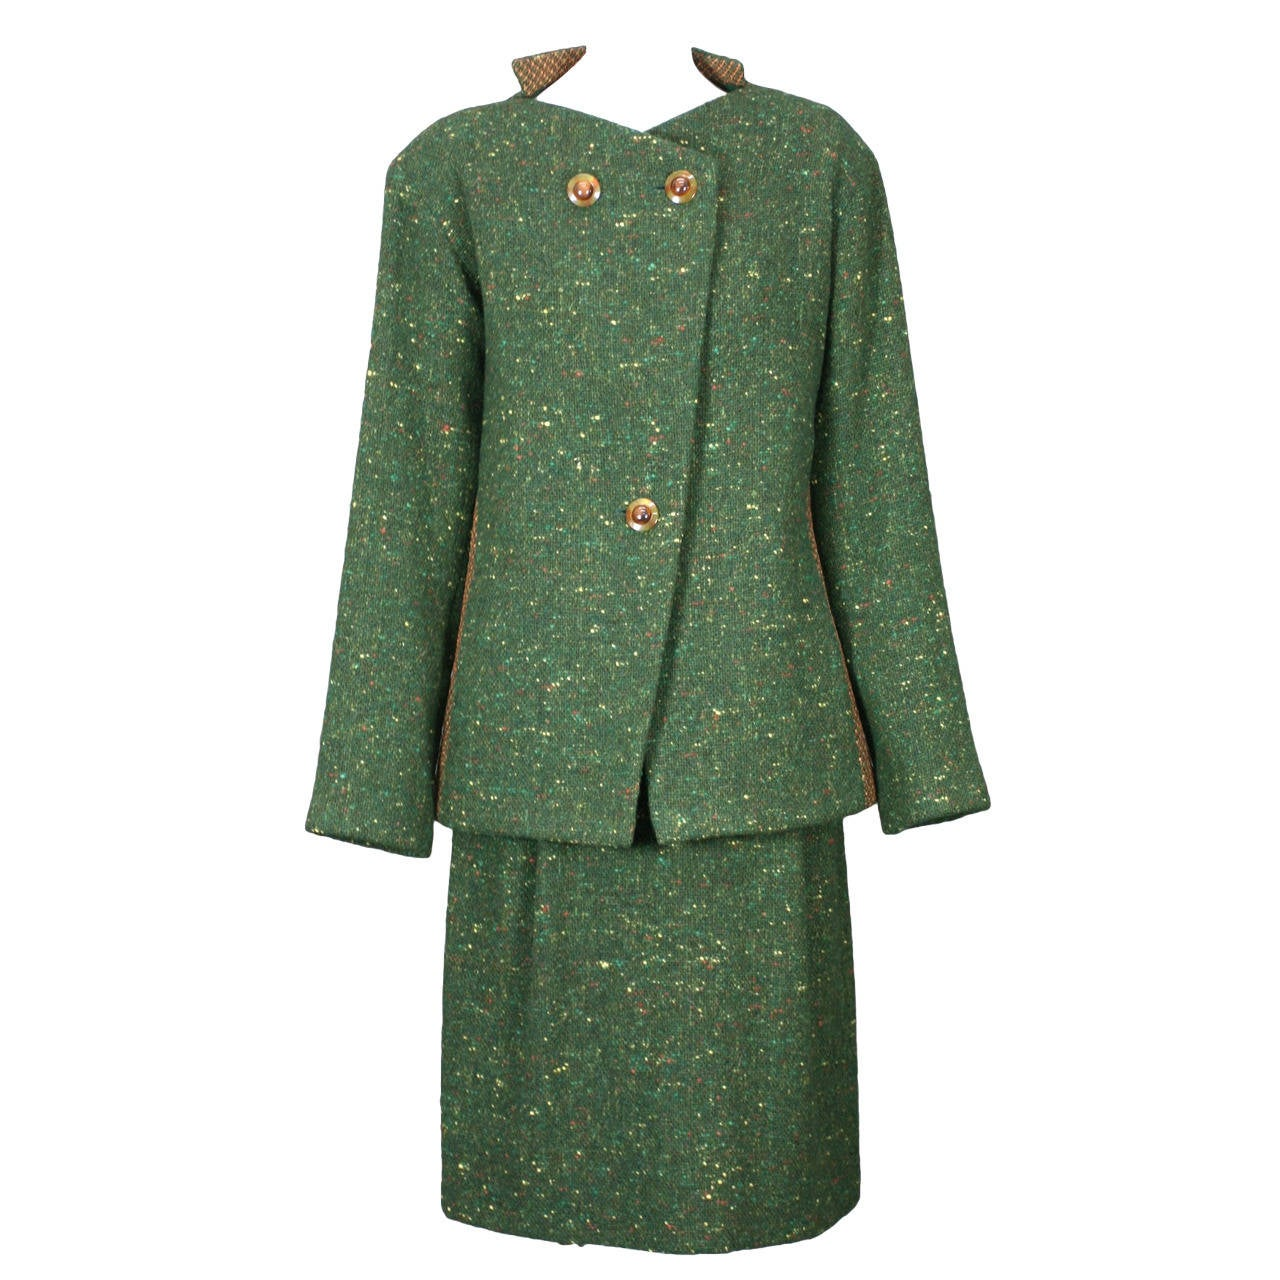 Geoffrey Beene Green Tweed Ensemble For Sale